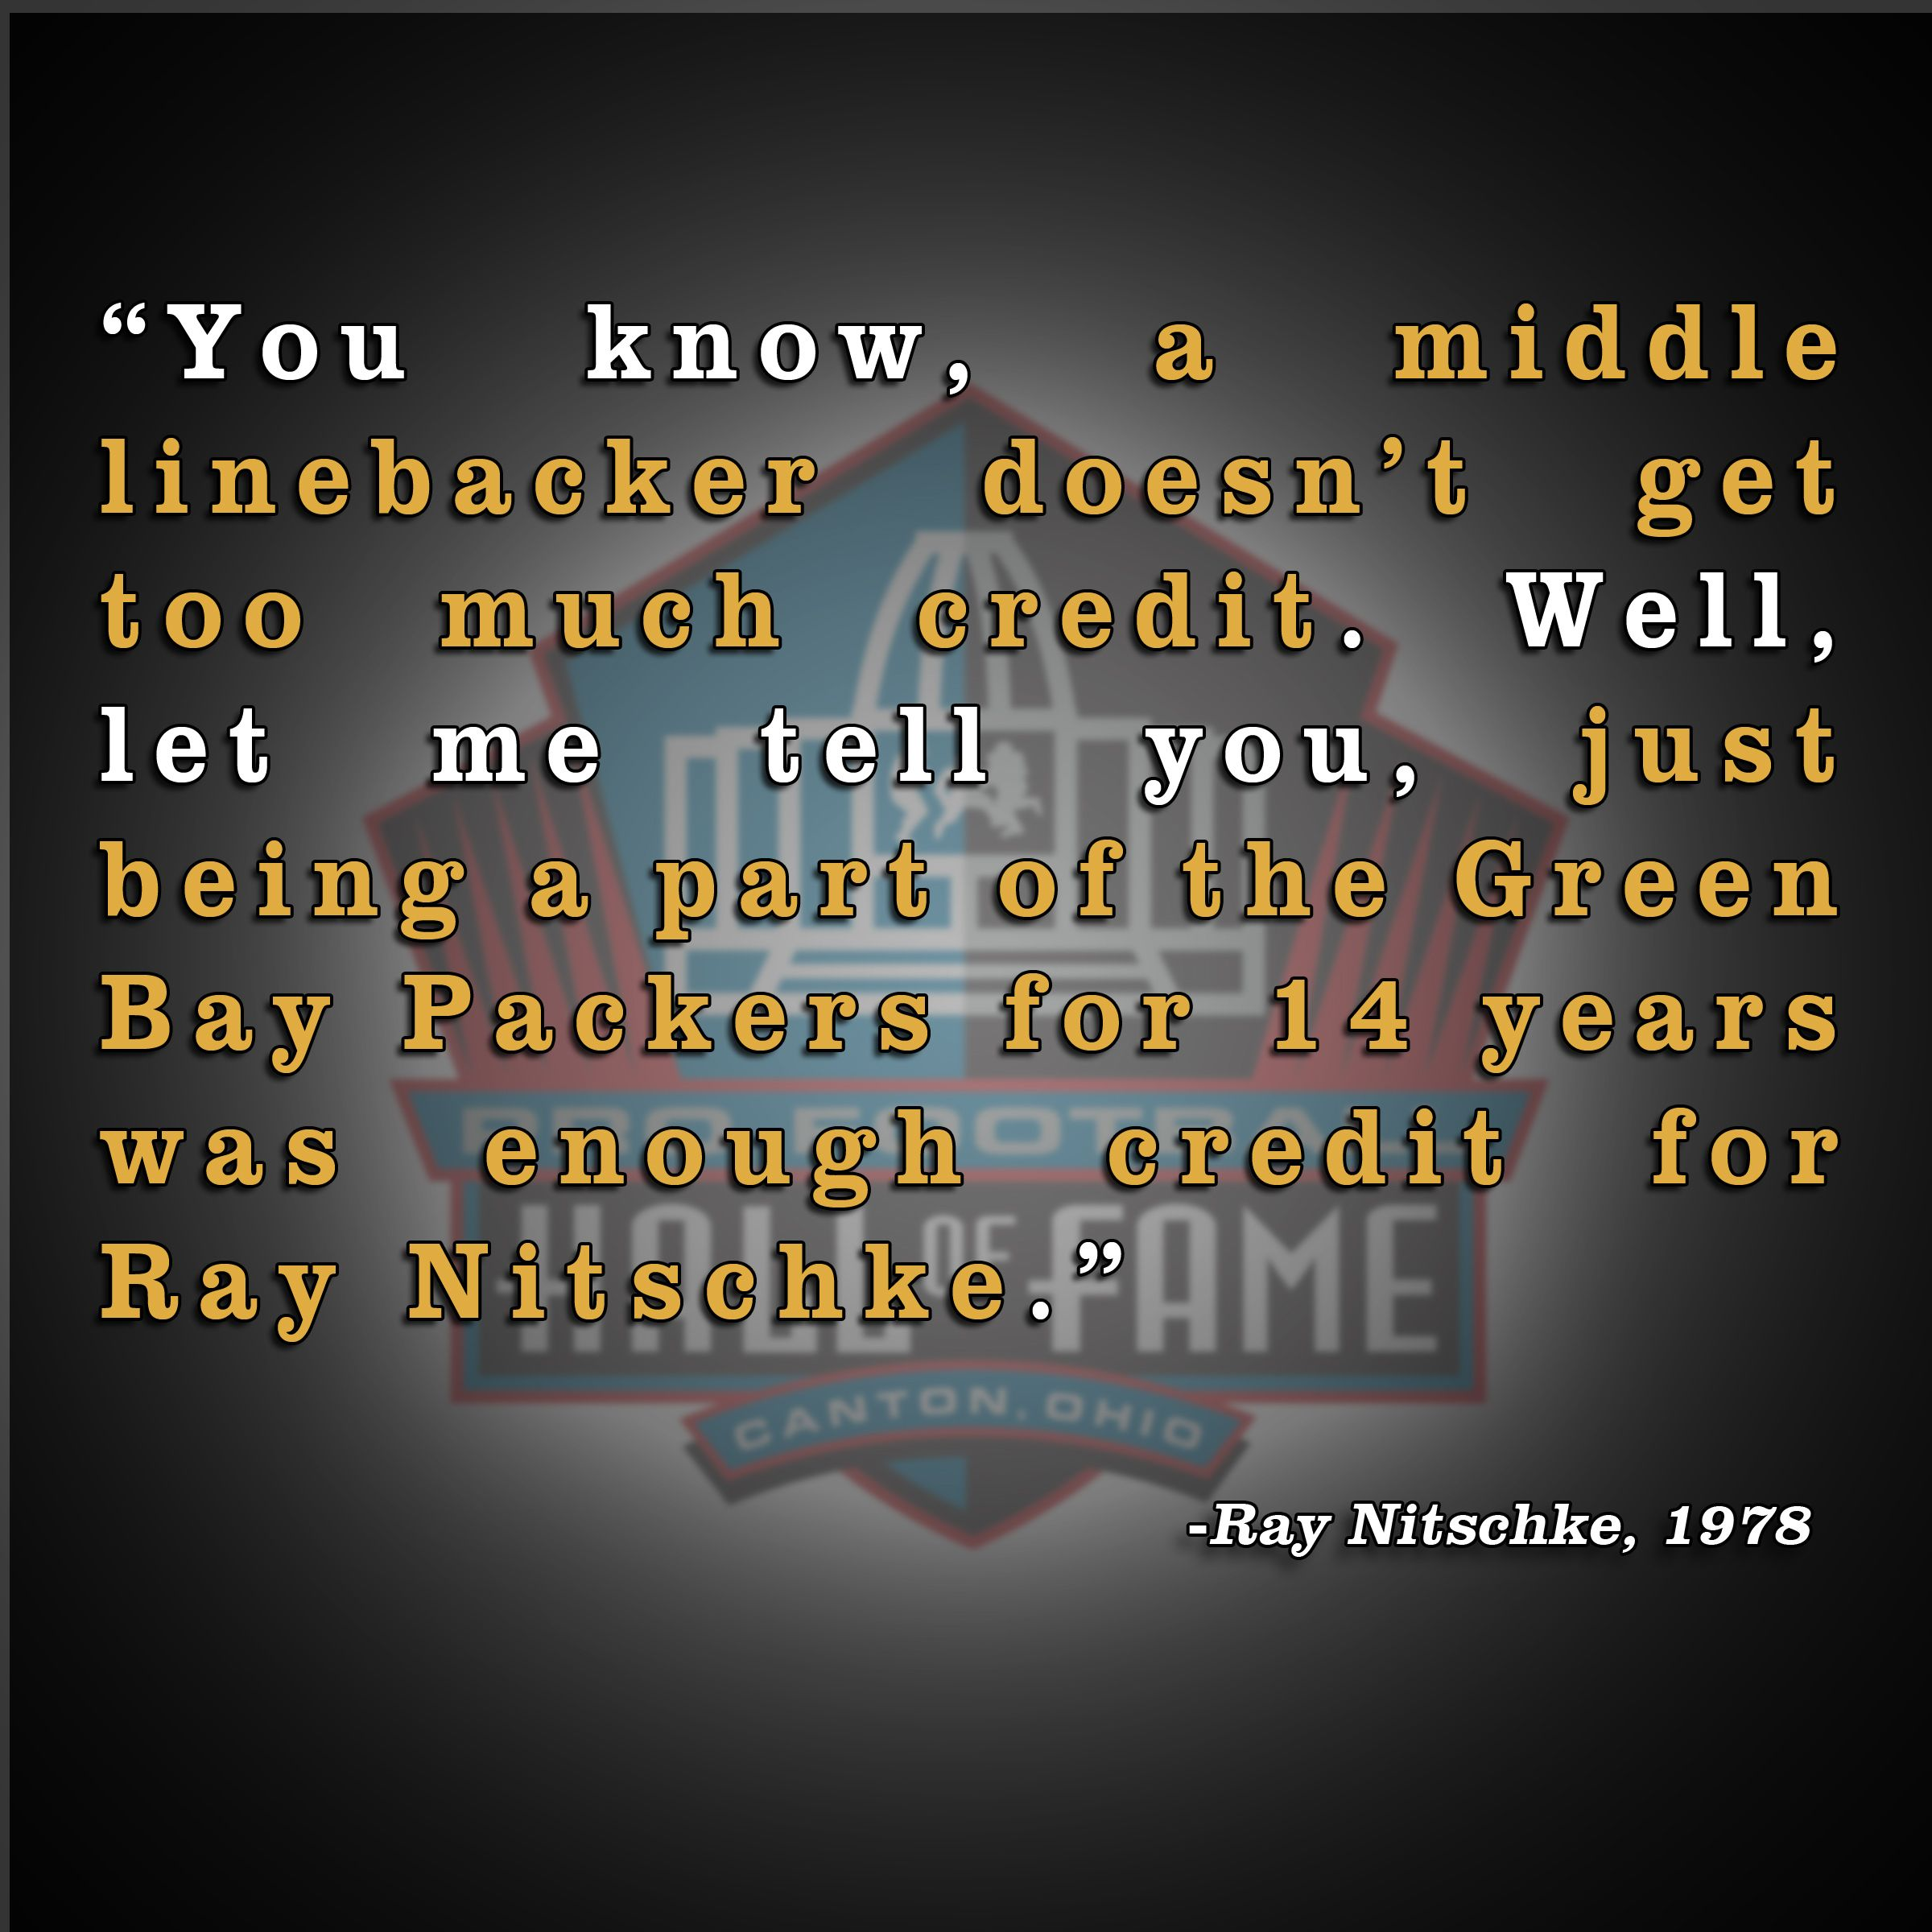 Pin By Pro Football Hall Of Fame On Quotable Green Bay Packers Green Bay Packers Vintage Green Bay Packers Fans